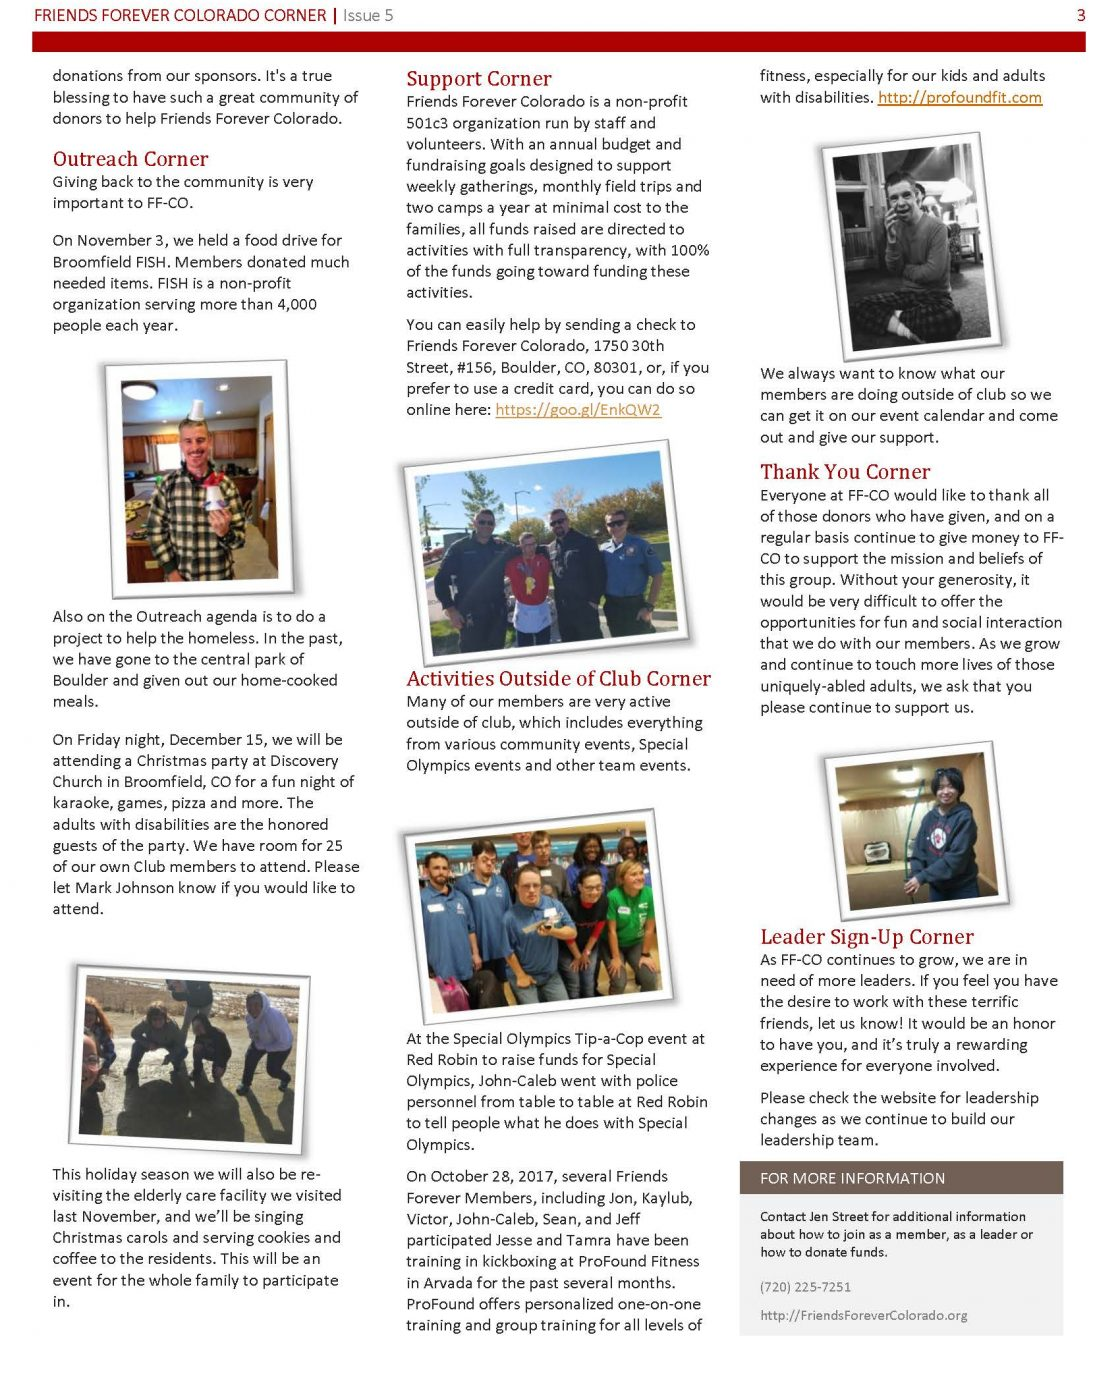 Newsletter Issue 5 - page 3